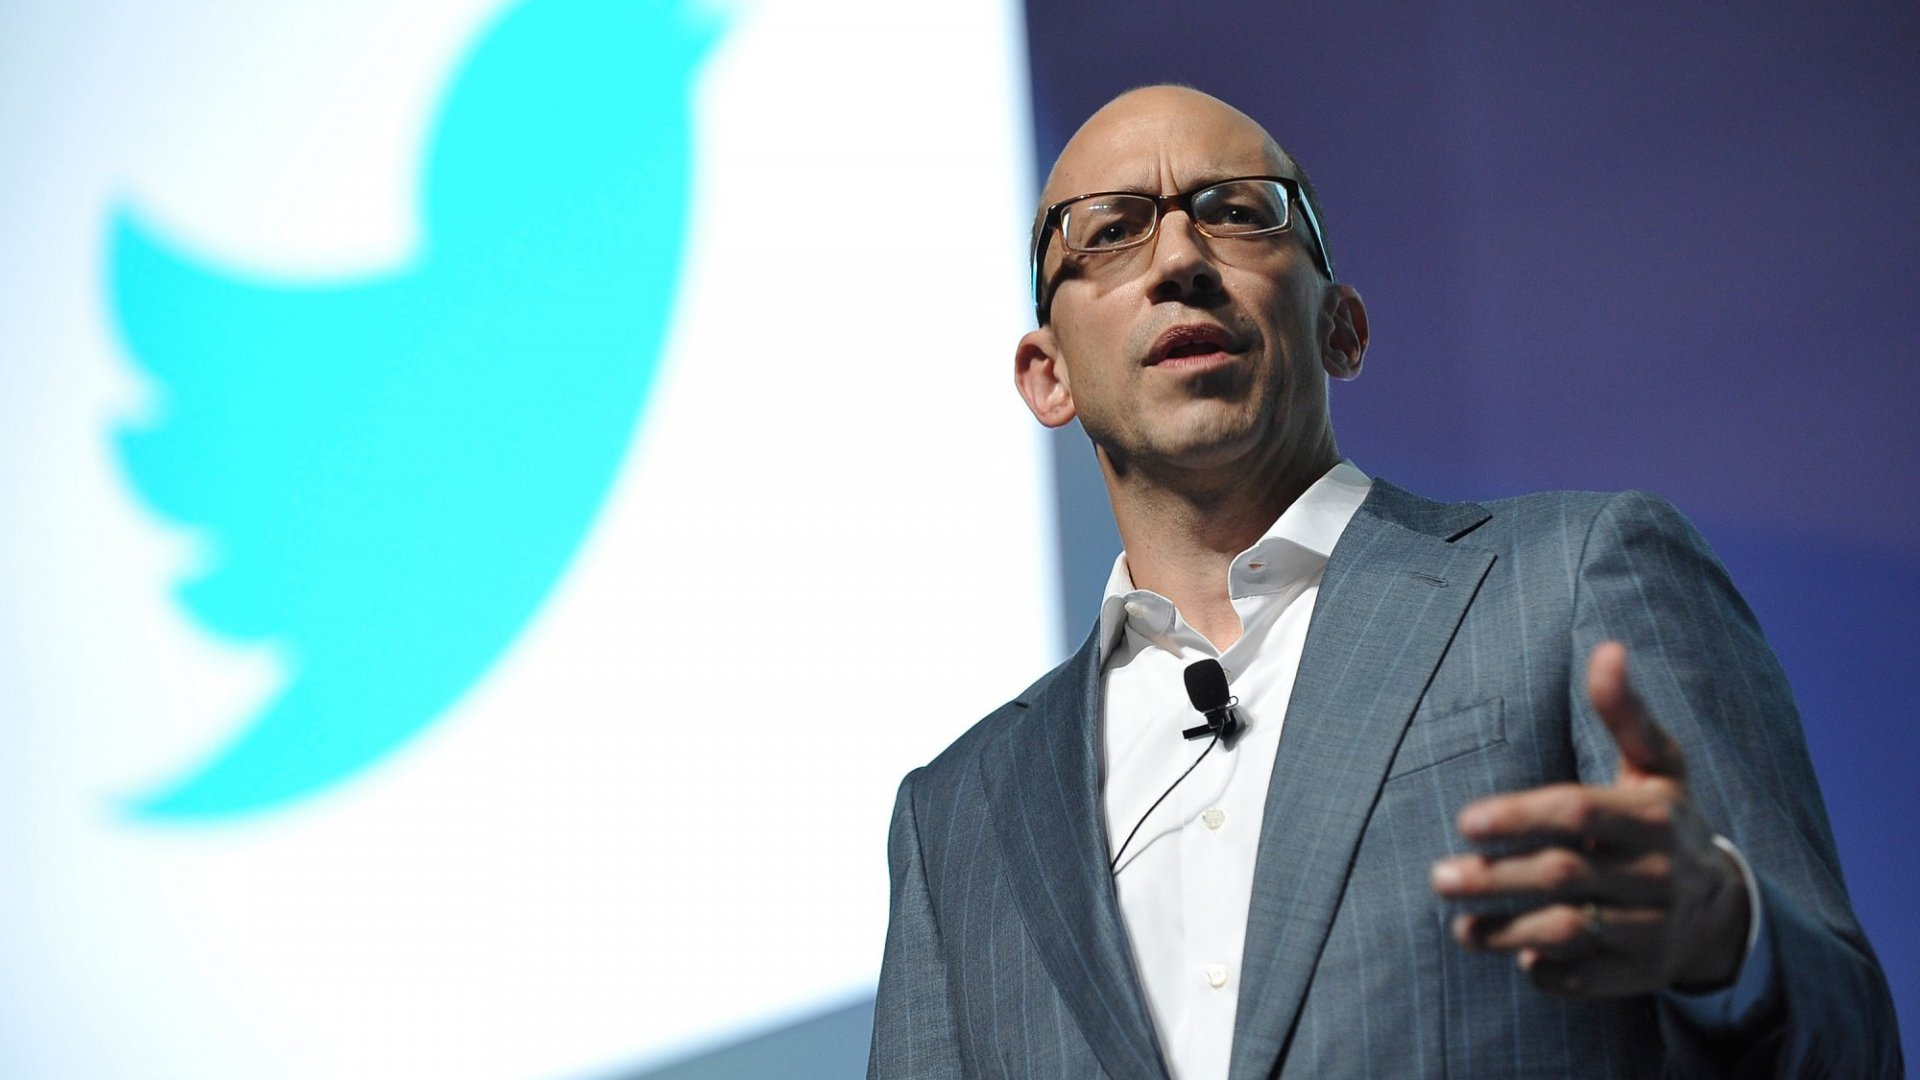 What Twitter CEO Dick Costolo Is Still Getting Wrong About Harassment